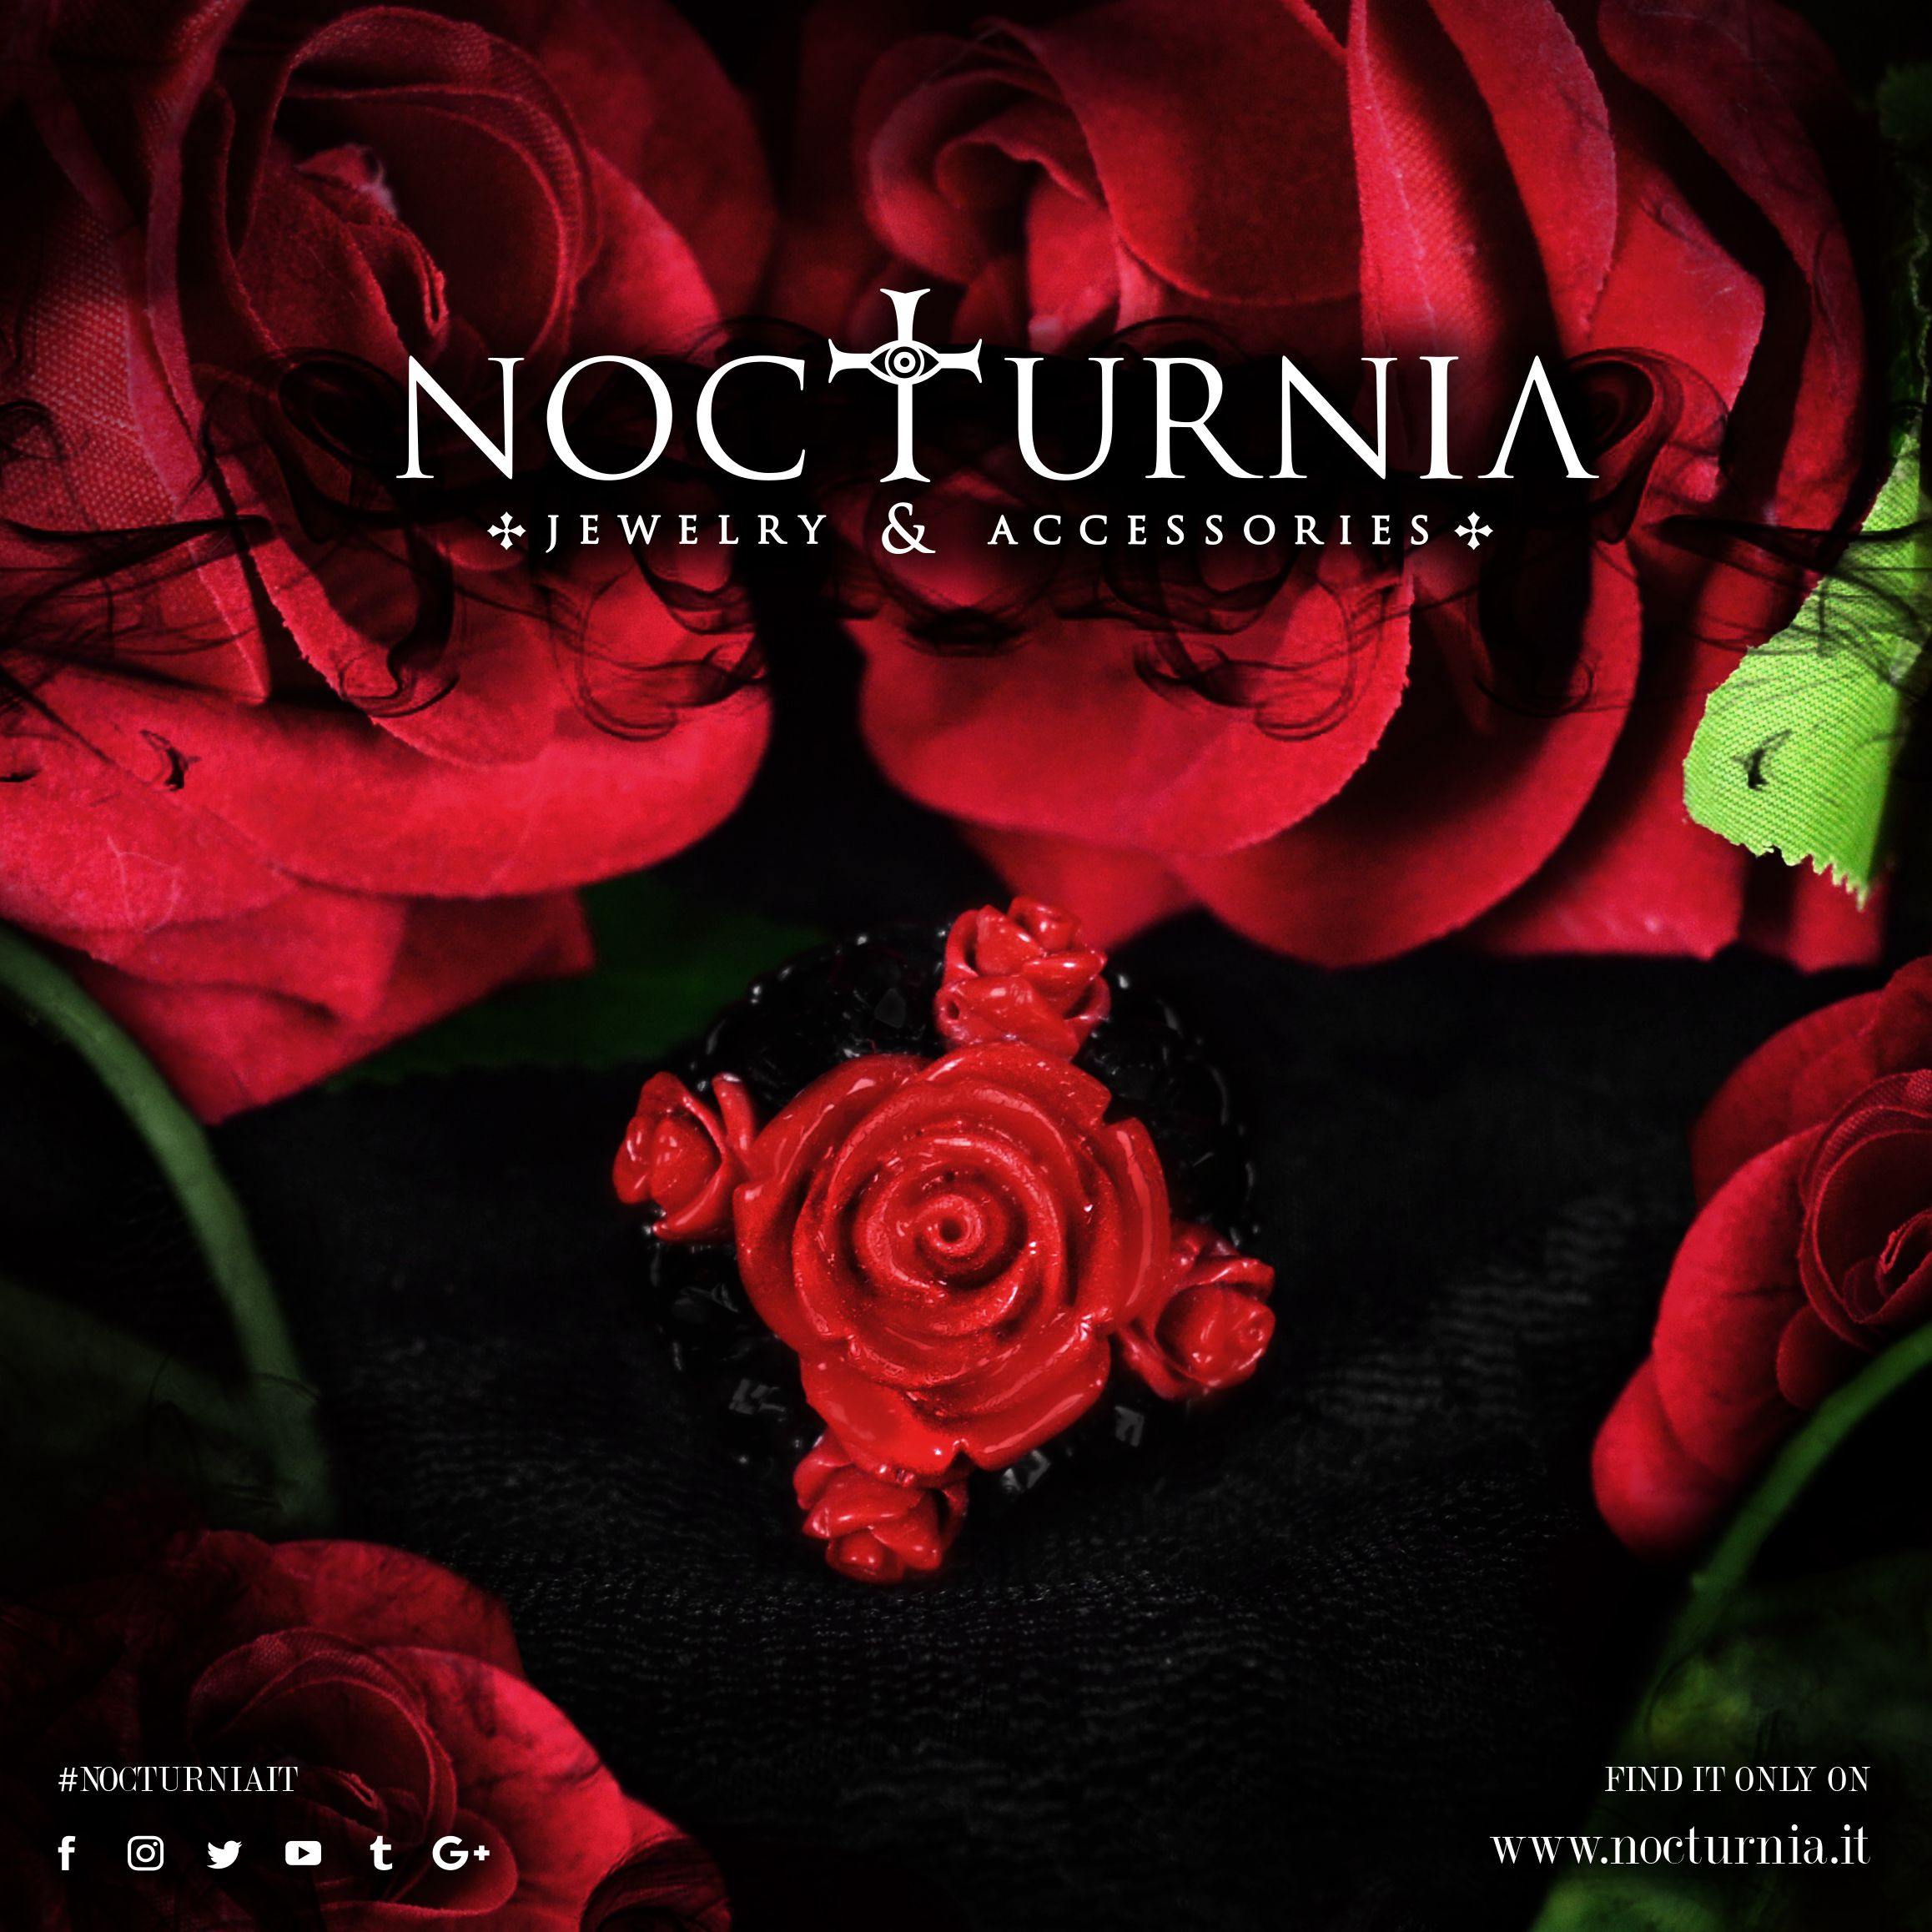 """The ring by Nocturnia """"CROSS OF ROSES"""" is available here http://bit.ly/crossofroses Worldwide Shipping #nocturniait"""